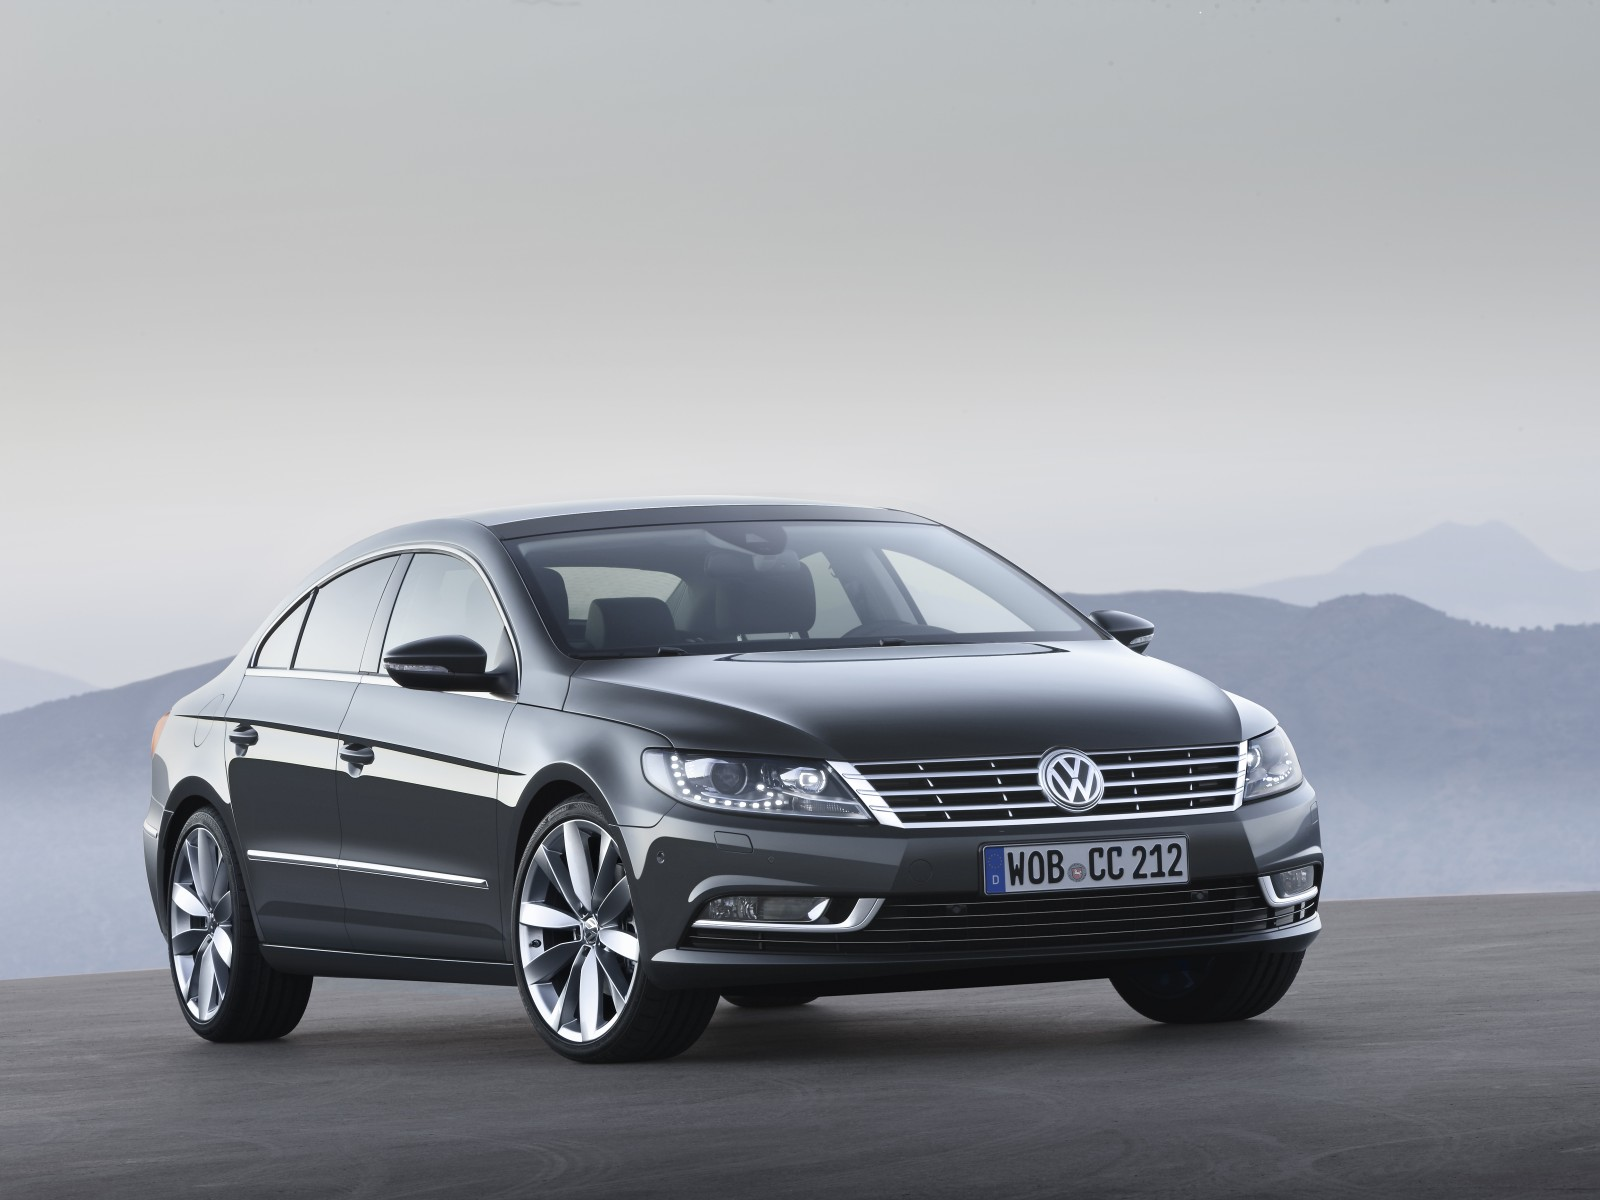 2013 volkswagen passat cc motor desktop. Black Bedroom Furniture Sets. Home Design Ideas